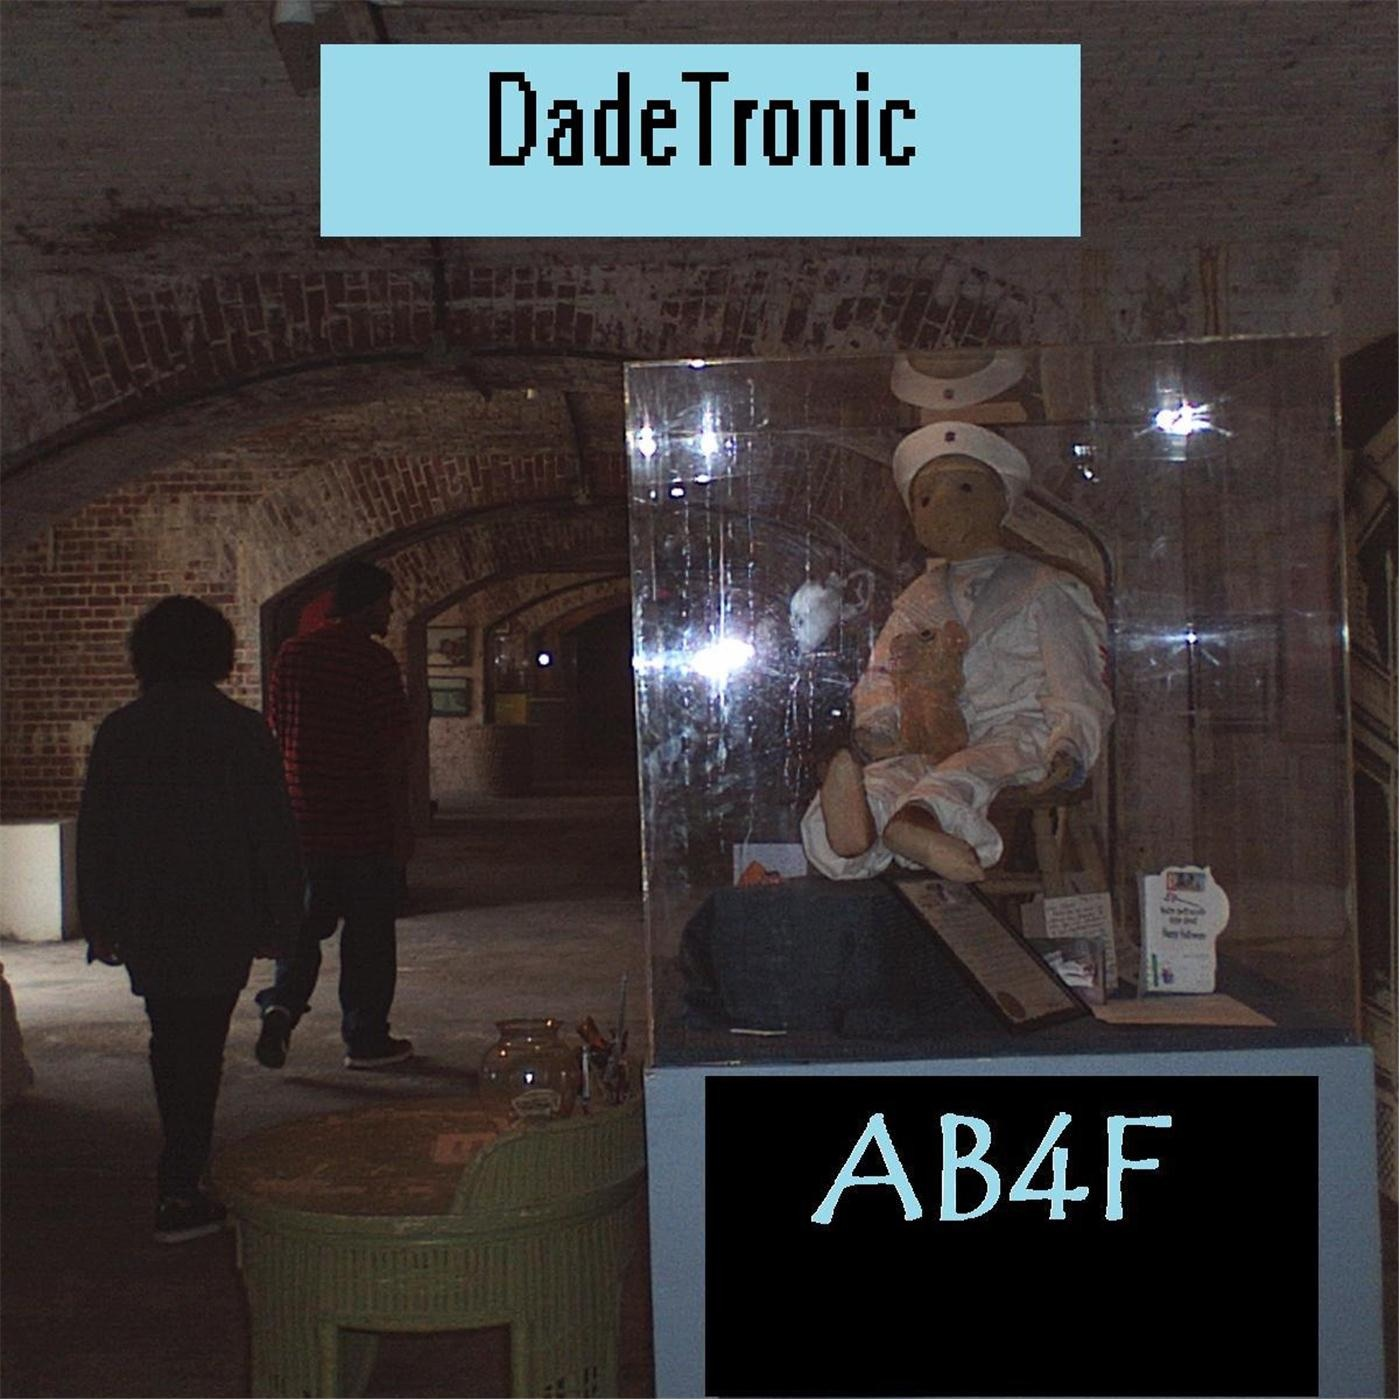 MP3 Songs Online:♫ Voodoo (Interlude 2) - AB4F album Dadetronic. Electronic,Music,R&B/Soul listen to music online free without downloading.